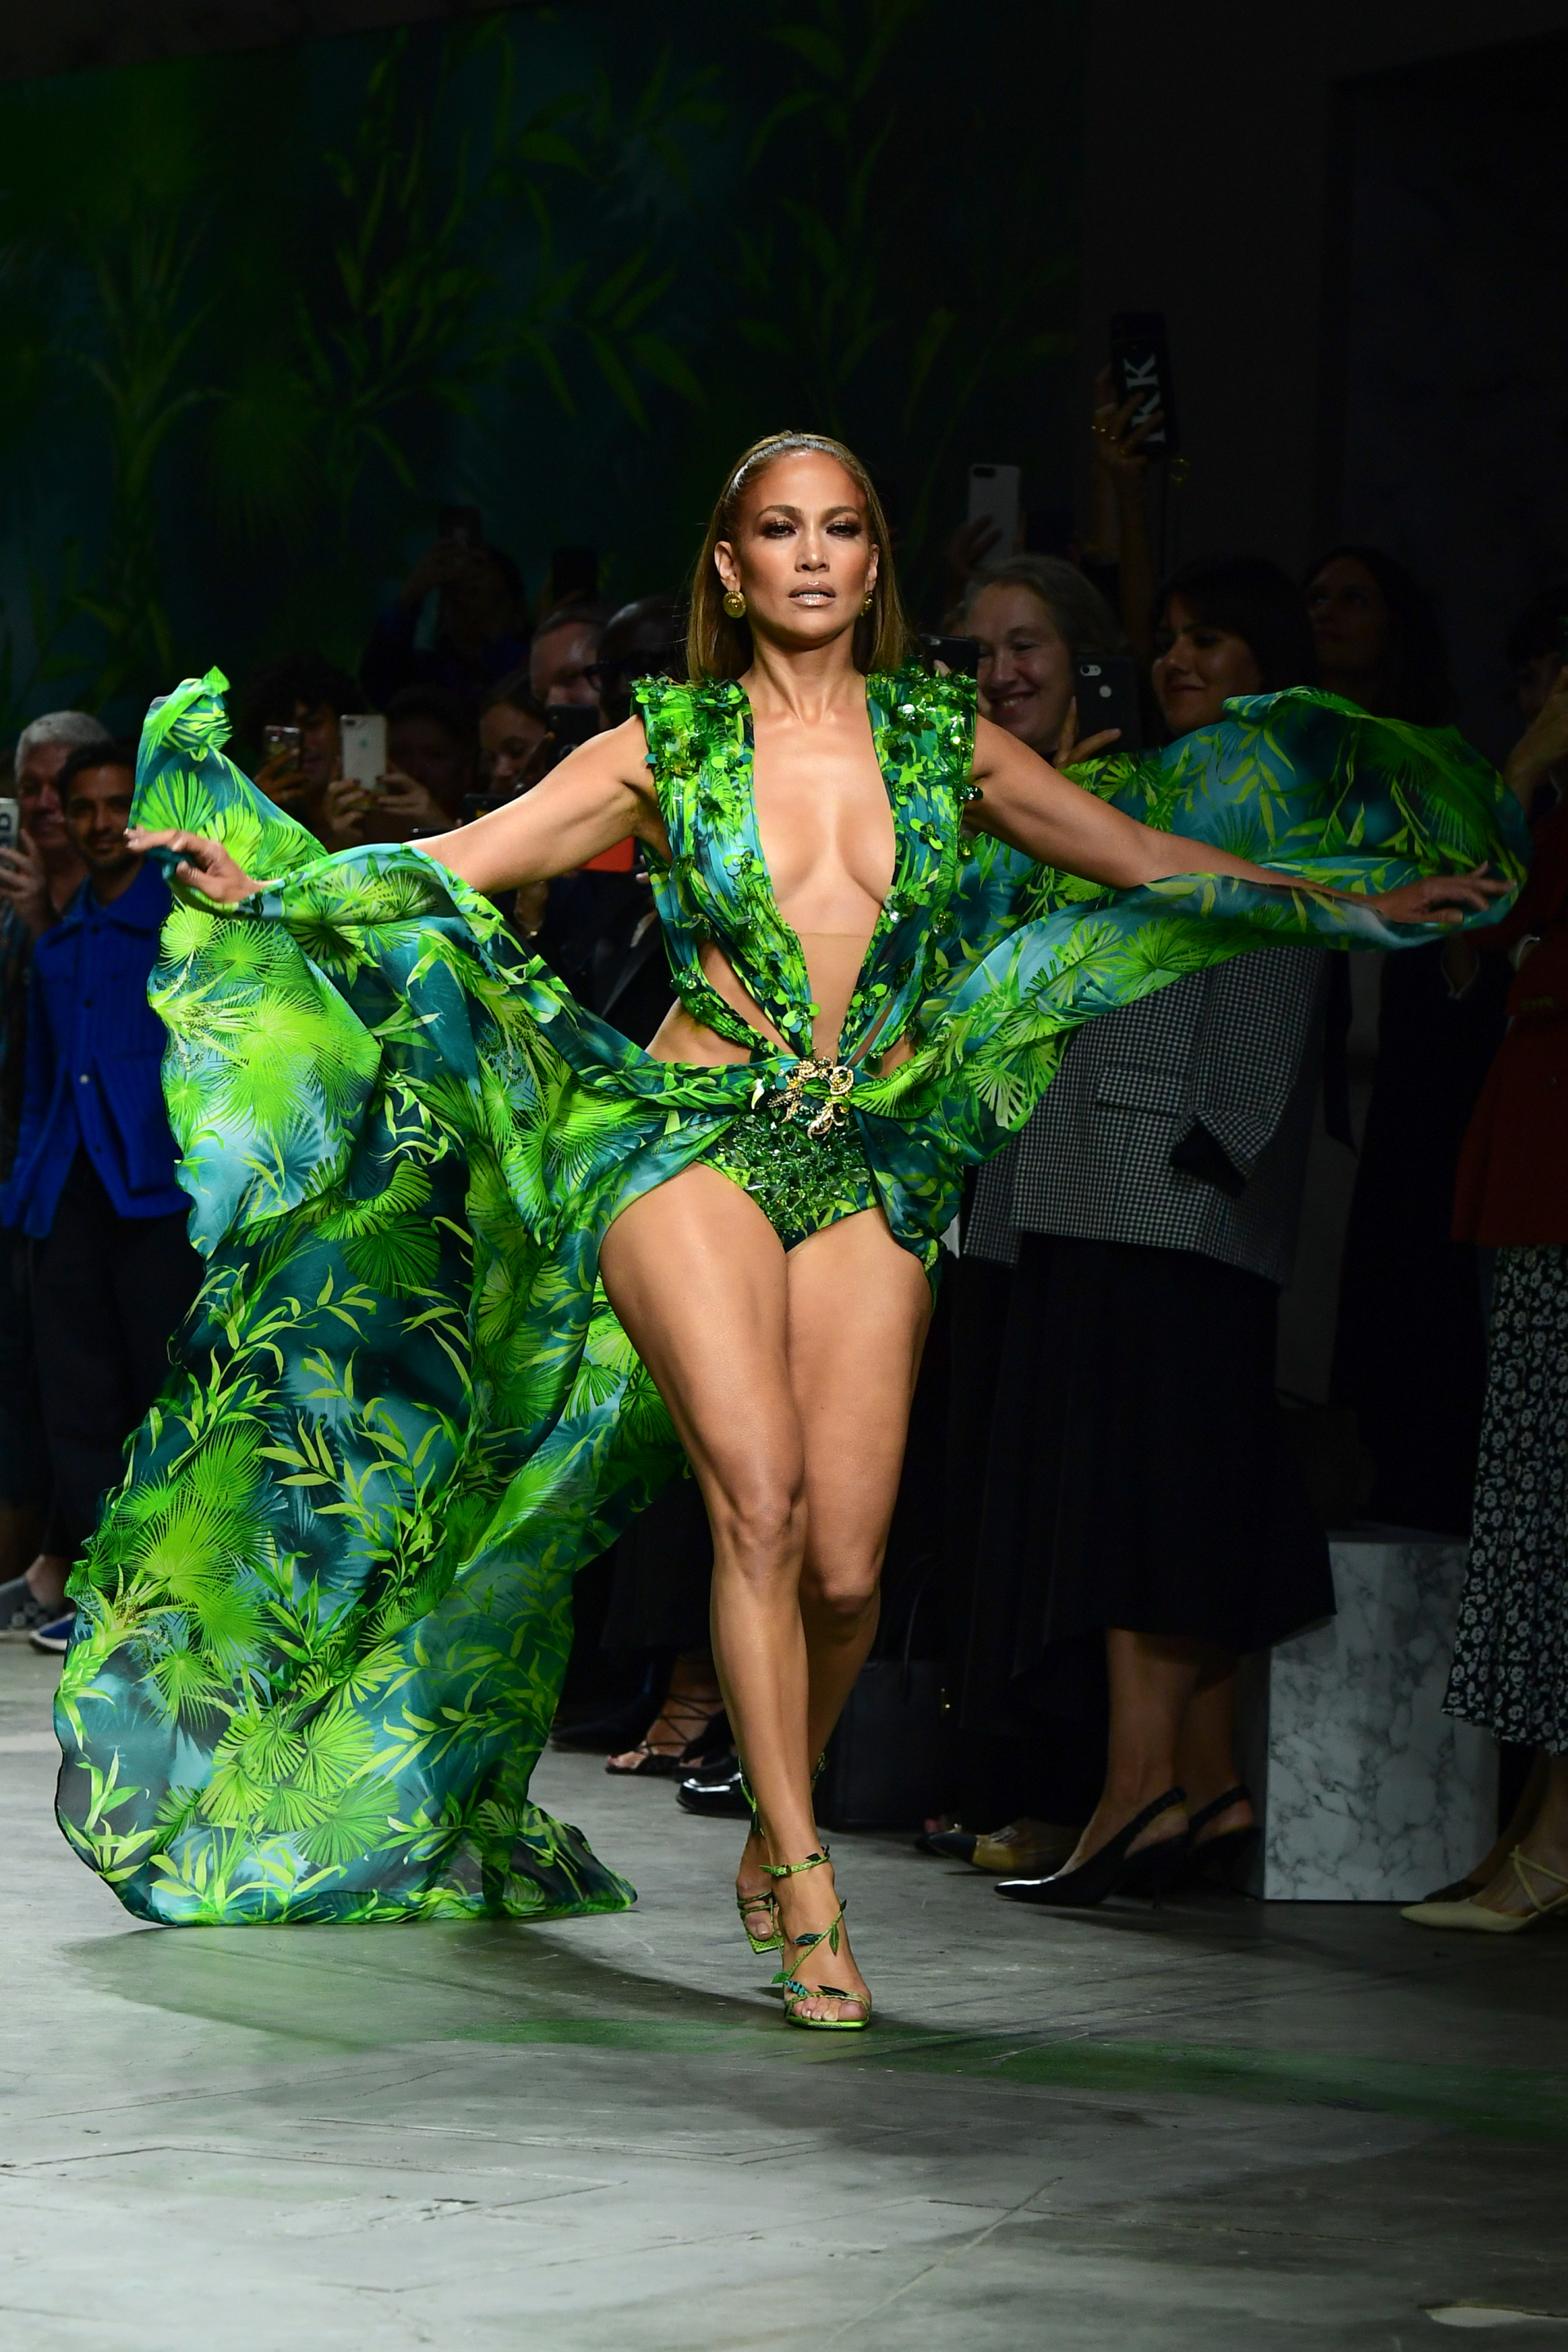 How <i>that</i> Versace dress inspired the creation of Google Images 18 years ago